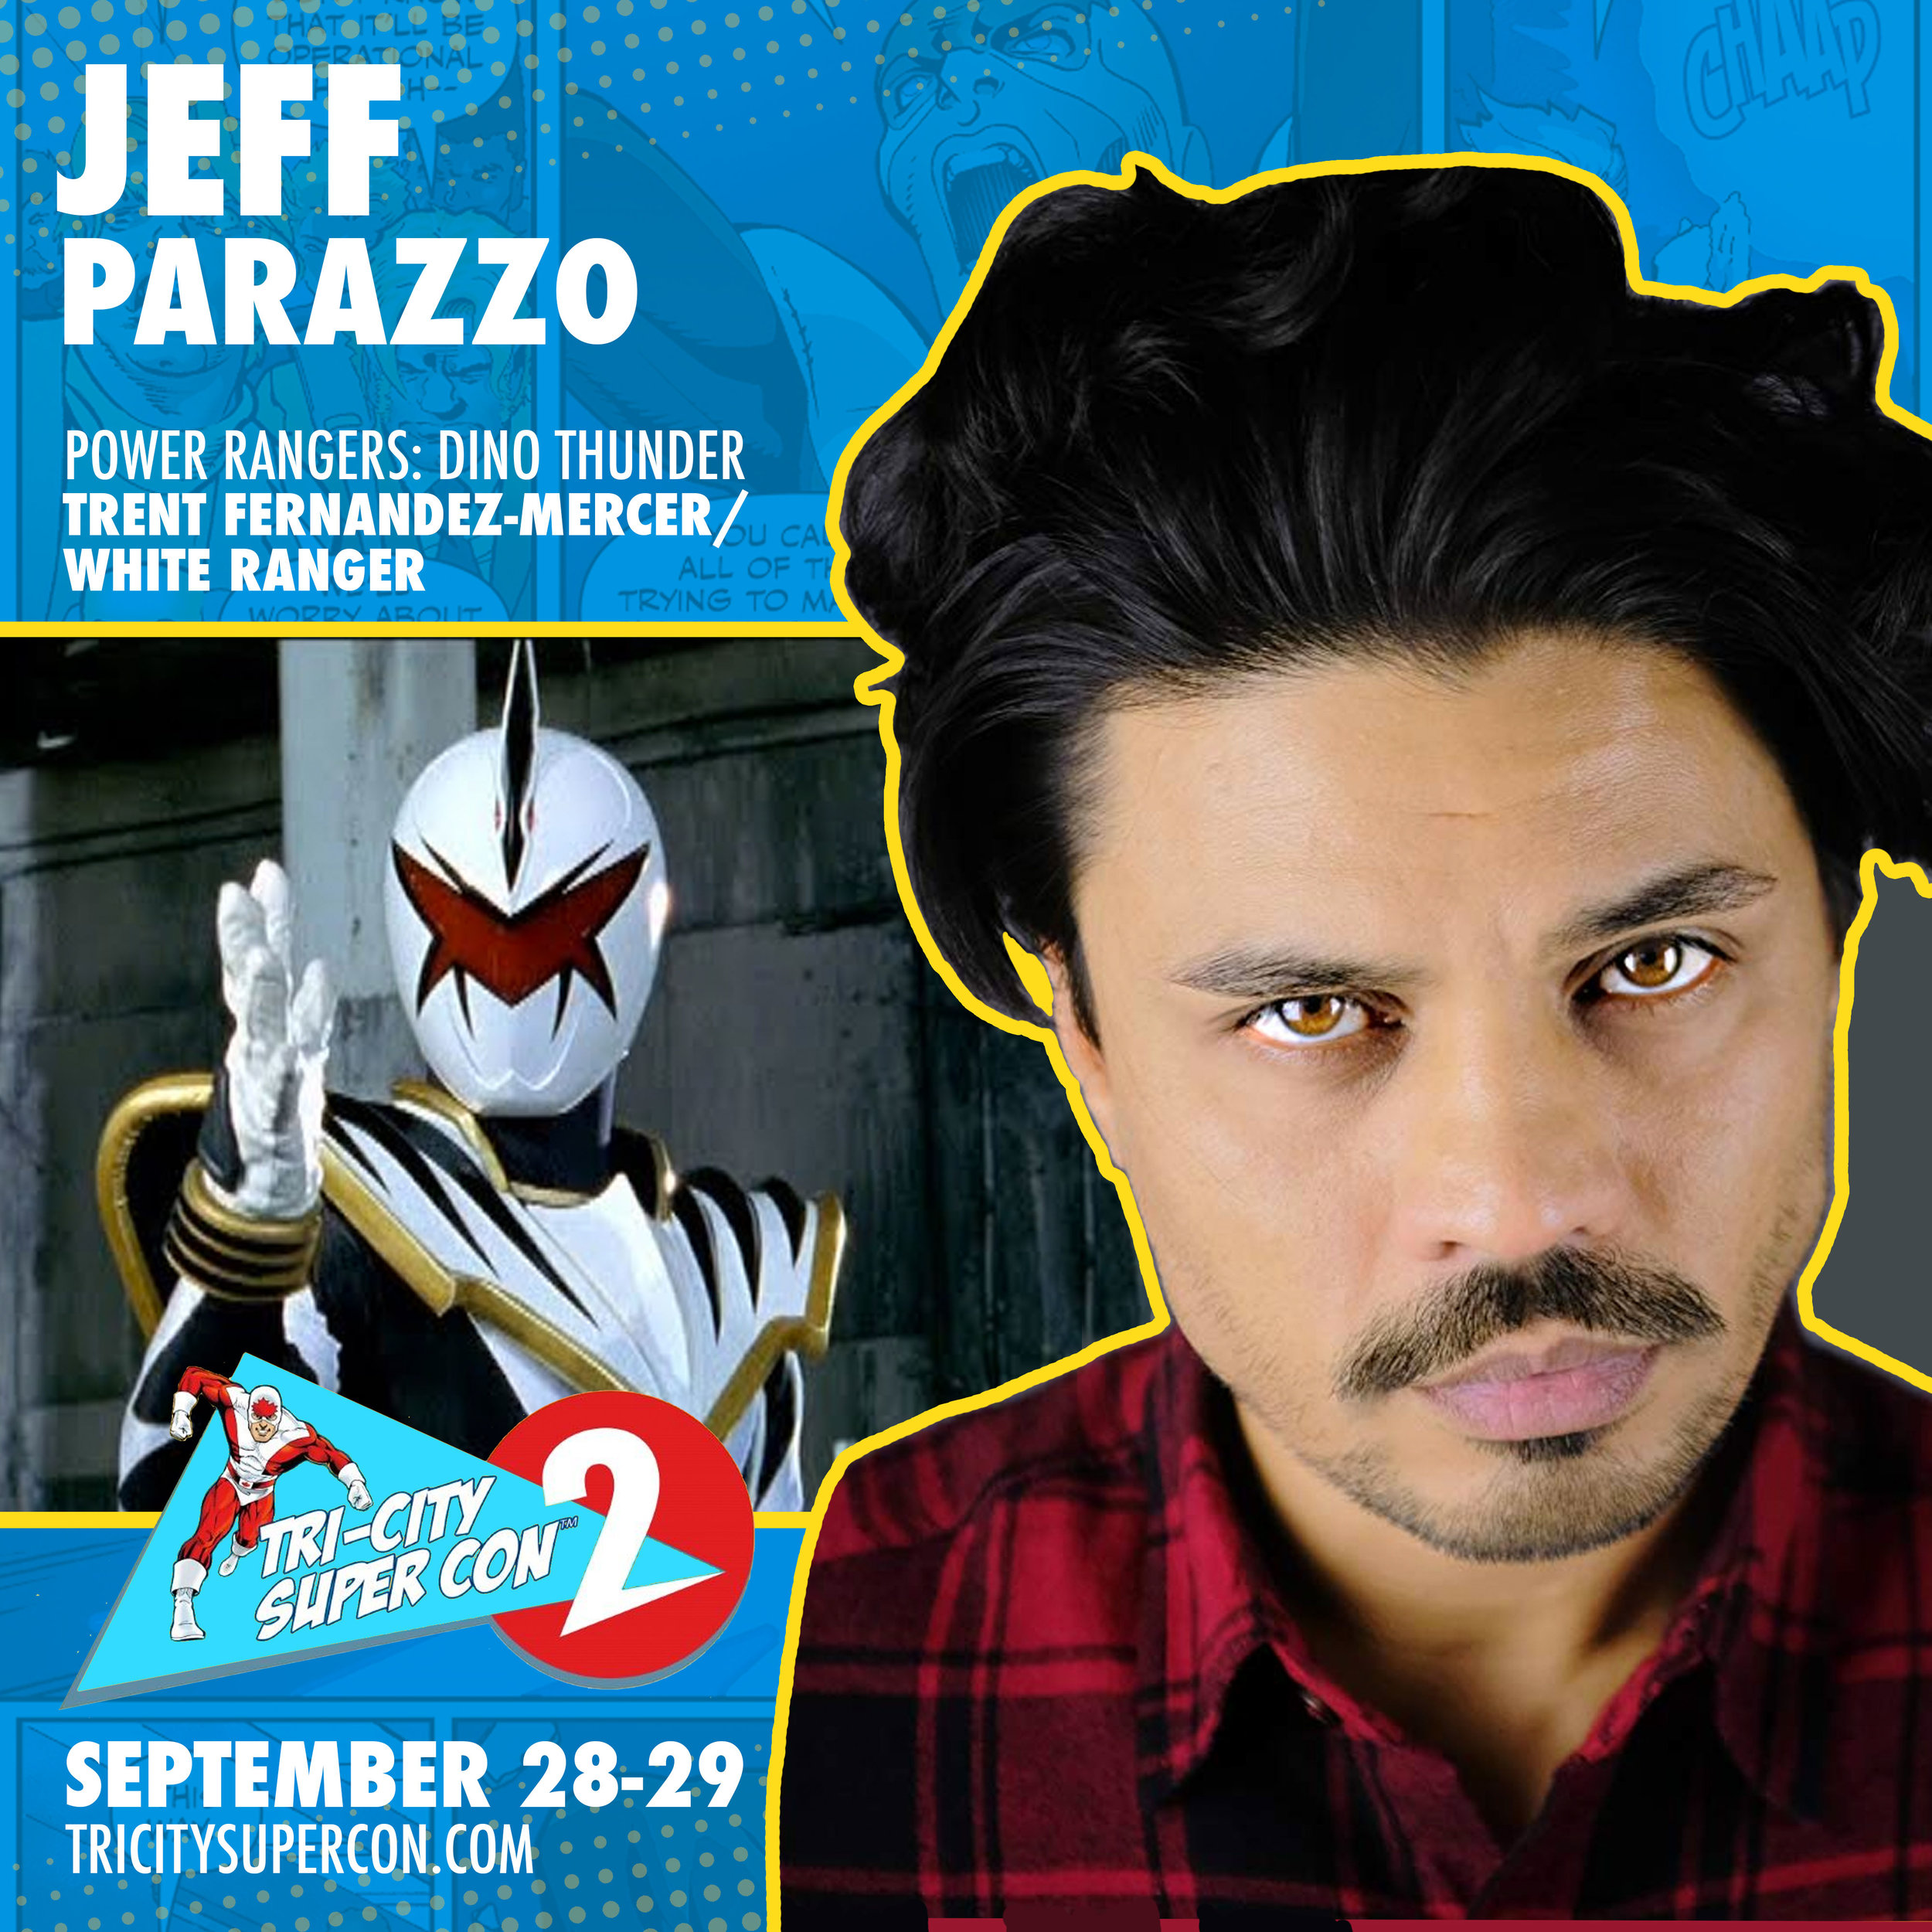 "Jeff Parazzo   is a Canadian actor with 20 years of professional film & television experience in both Canadian and American markets. Jeff is best known to his fans for his work as Trent Fernandes Mercer, The White Dino Thunder Ranger from the internationally acclaimed hit kids television franchise Power Rangers. Jeff has appeared in Dino Thunder, SPD and recently in the 25th anniversary special on Super Ninja Steel. He has also worked on such shows as ""12 Monkeys ""Flashpoint"", ""Nikita"", ""Degrassi"" and ""Suits"". Jeff also has had multiple films debut at the prestigious Toronto International Film Festival with the most recent film being 2017's Molly's Game directed by Aaron Sorkin."